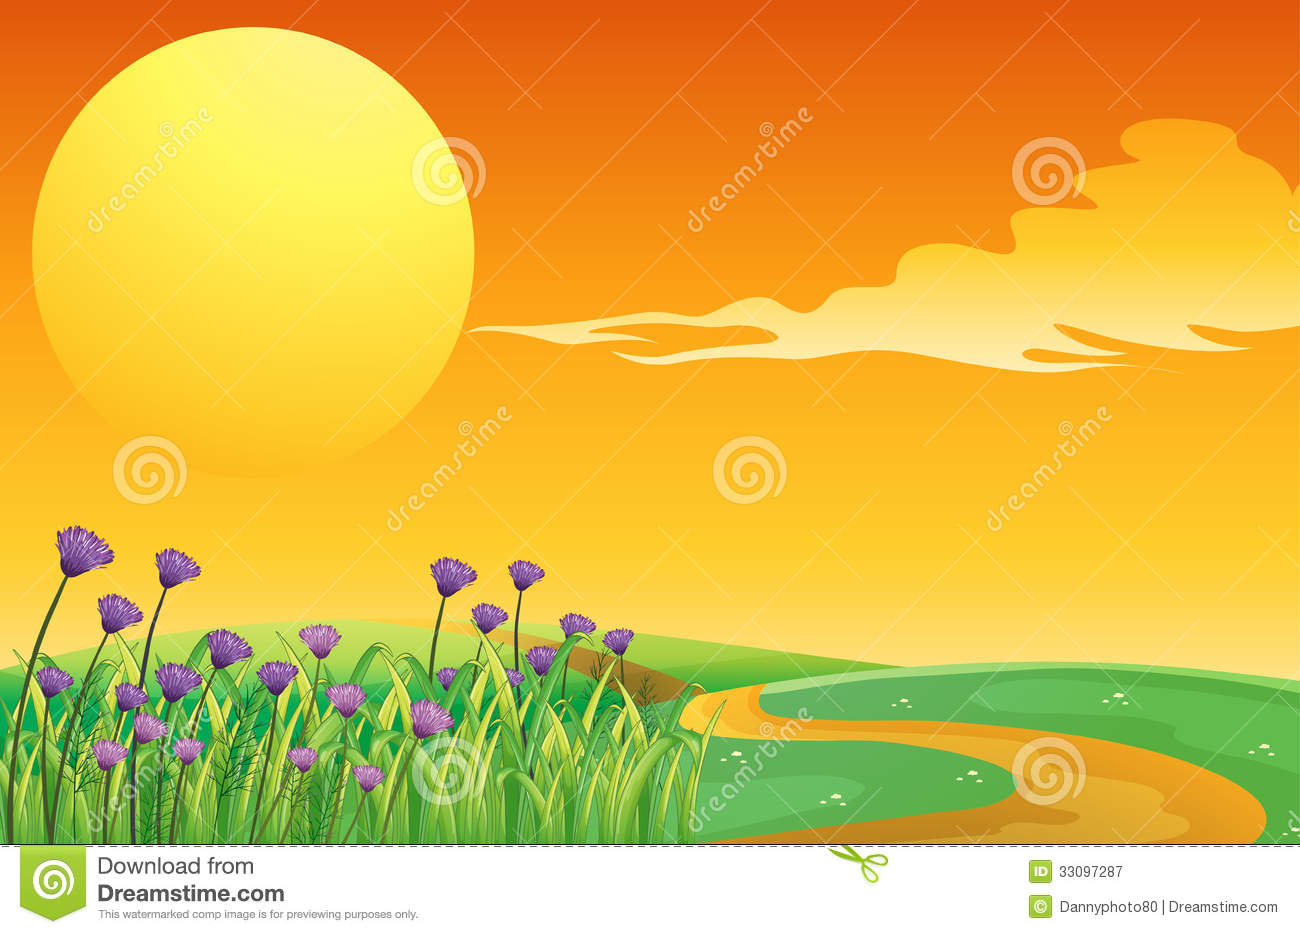 afternoon%20clipart